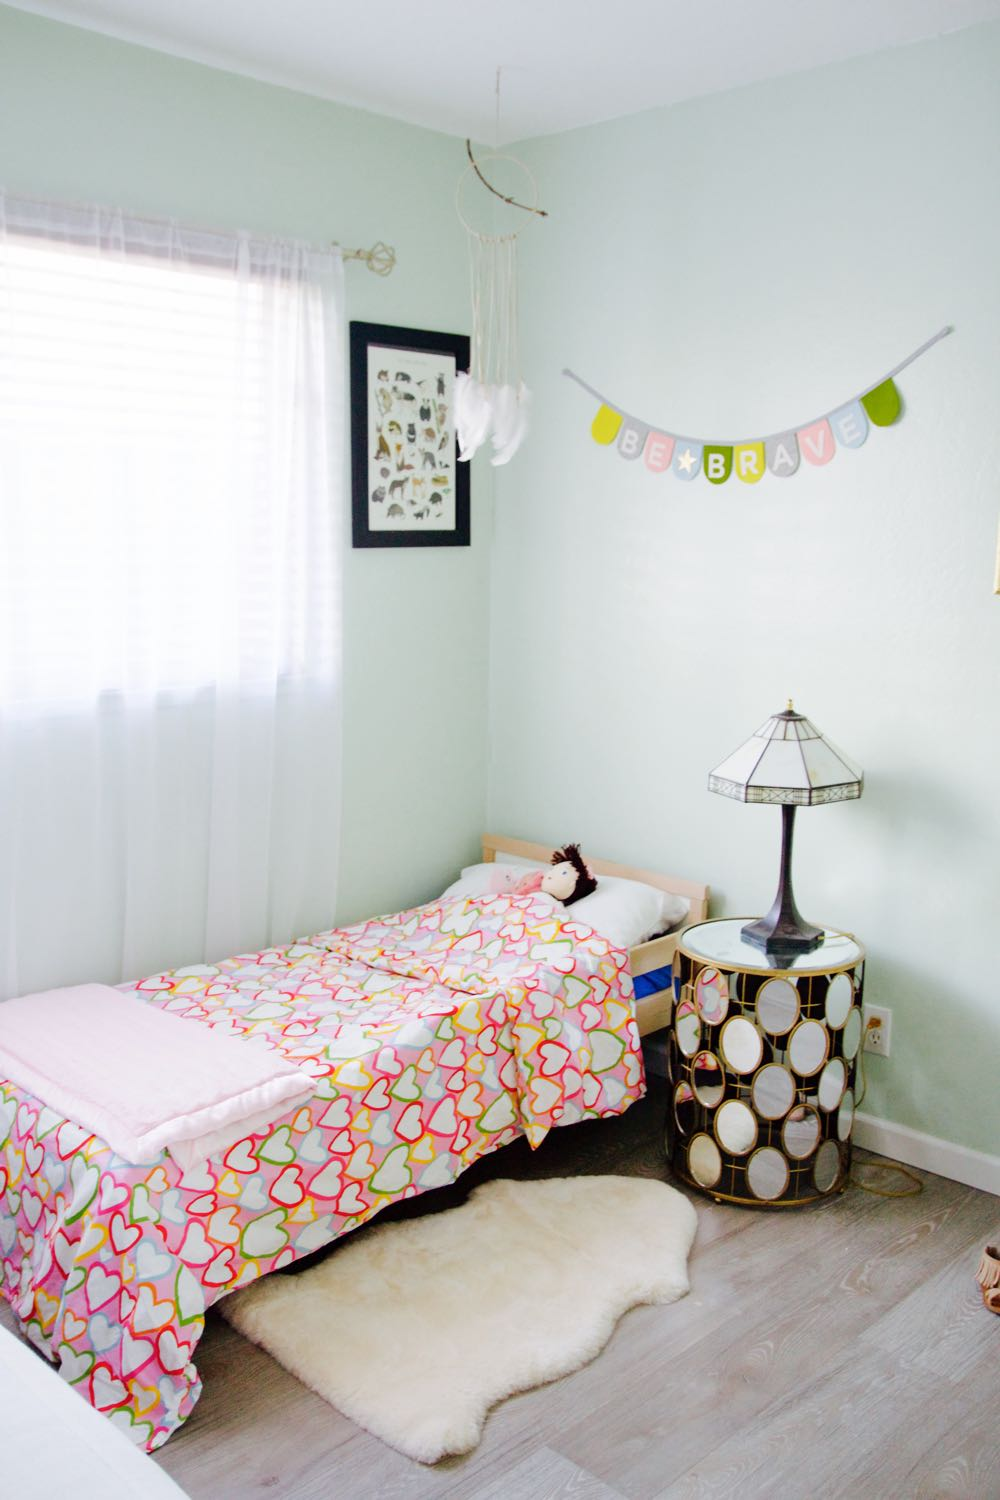 Not too girly little girl's room in pale green and pink